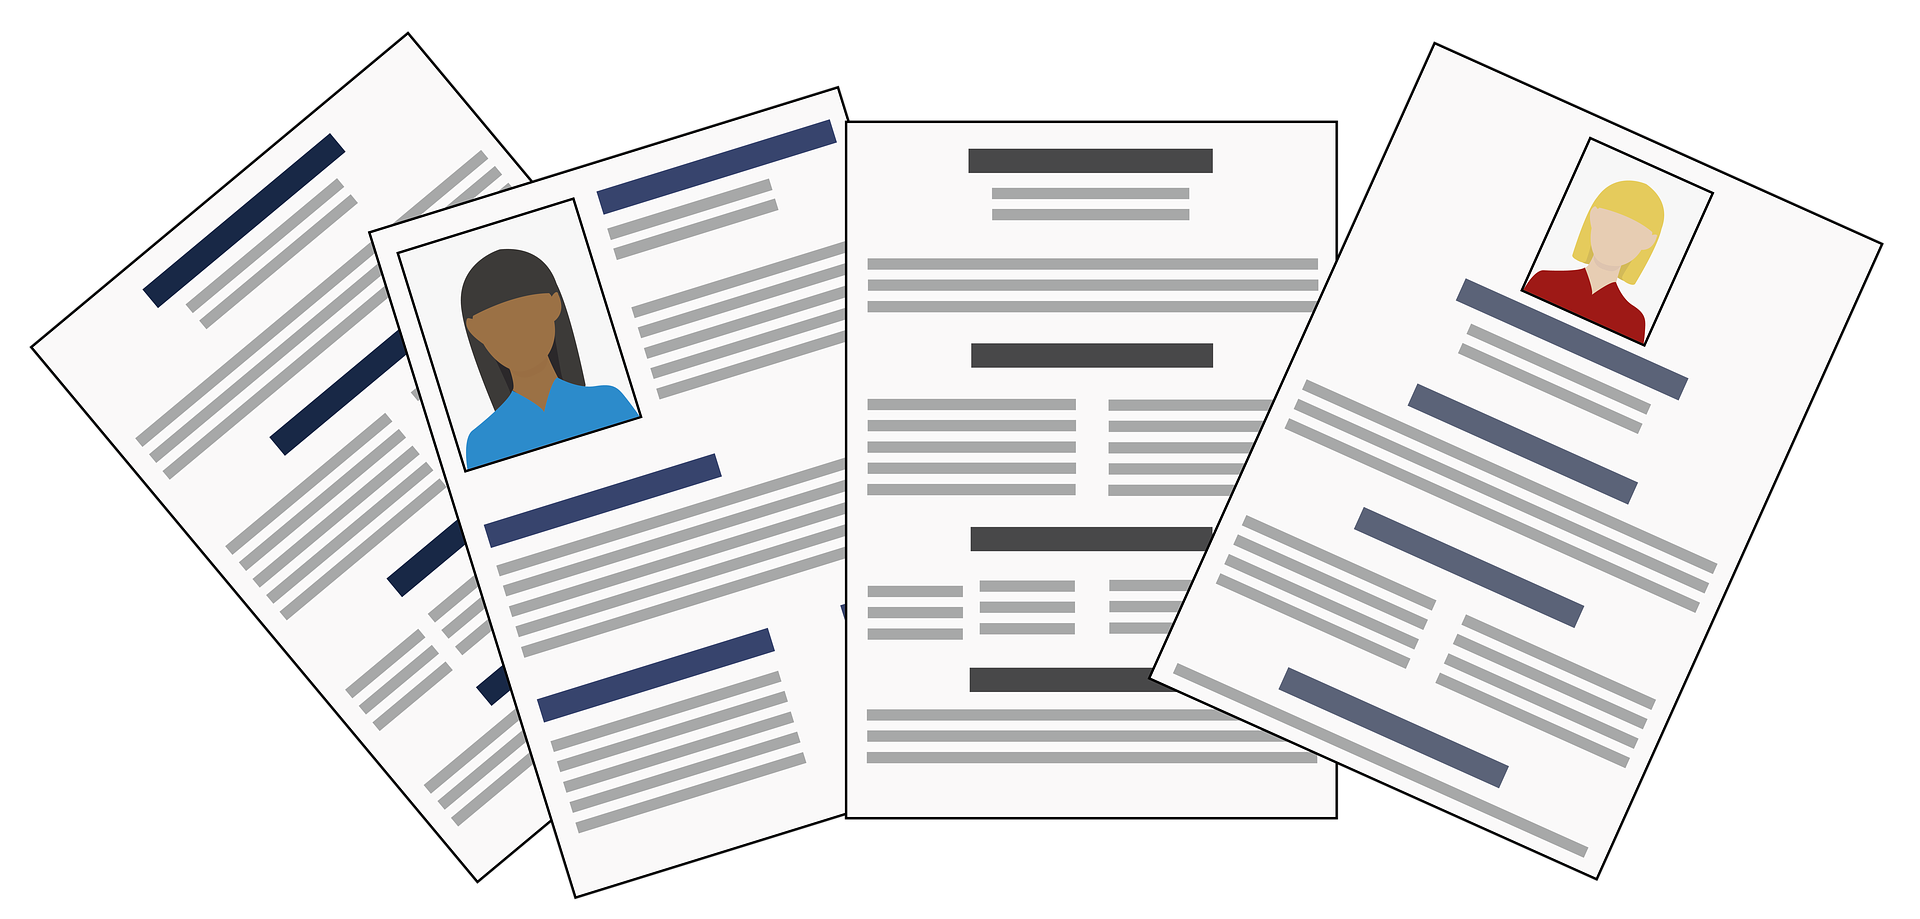 Your Resume Format Could Score You An Interview